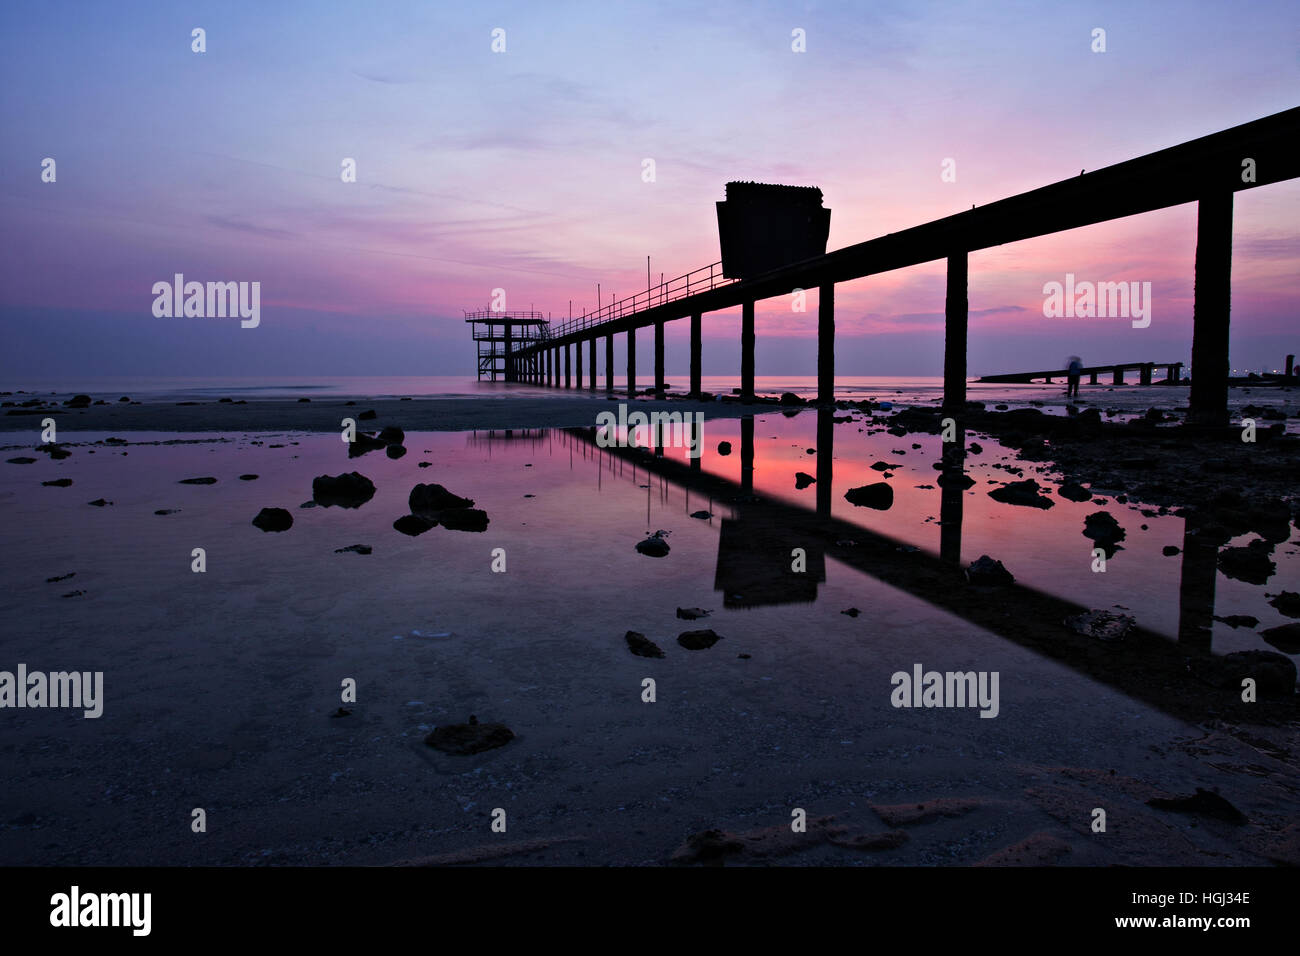 about to see the sunrise - Stock Image